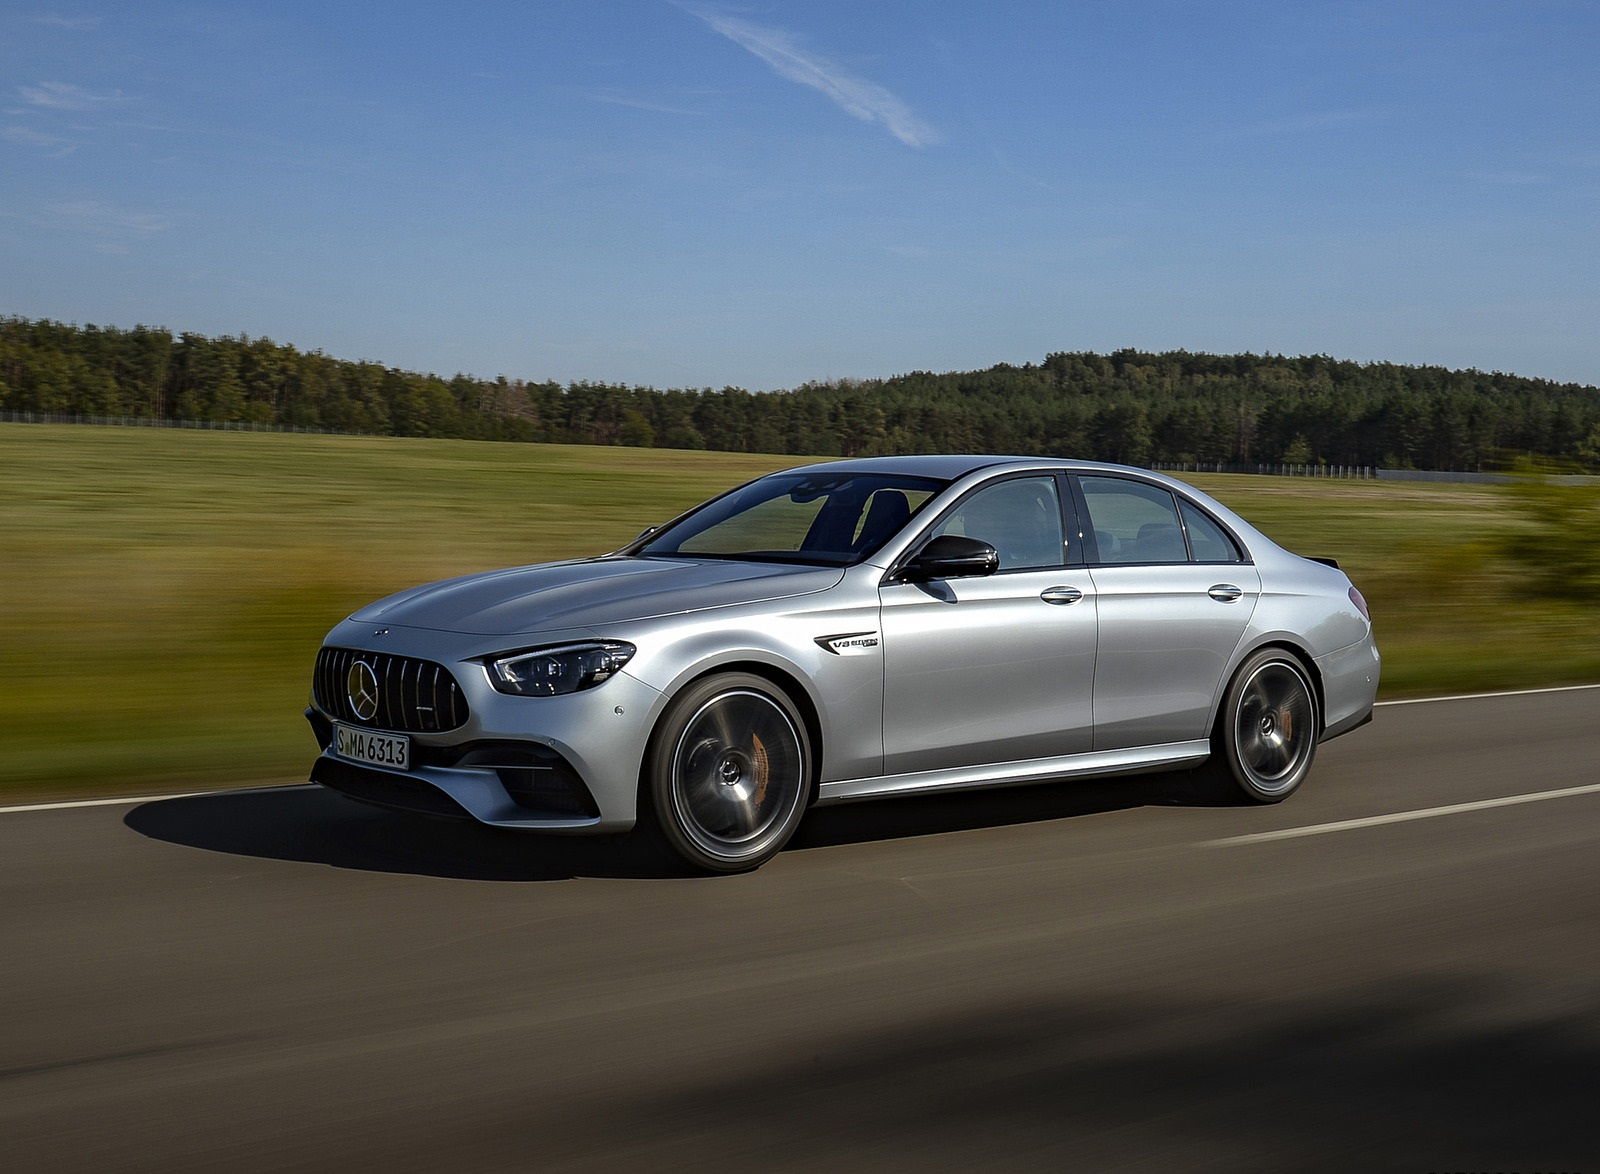 2021 Mercedes-AMG E 63 S 4MATIC+ (Color: High-Tech Silver Metallic) Front Three-Quarter Wallpapers (2)